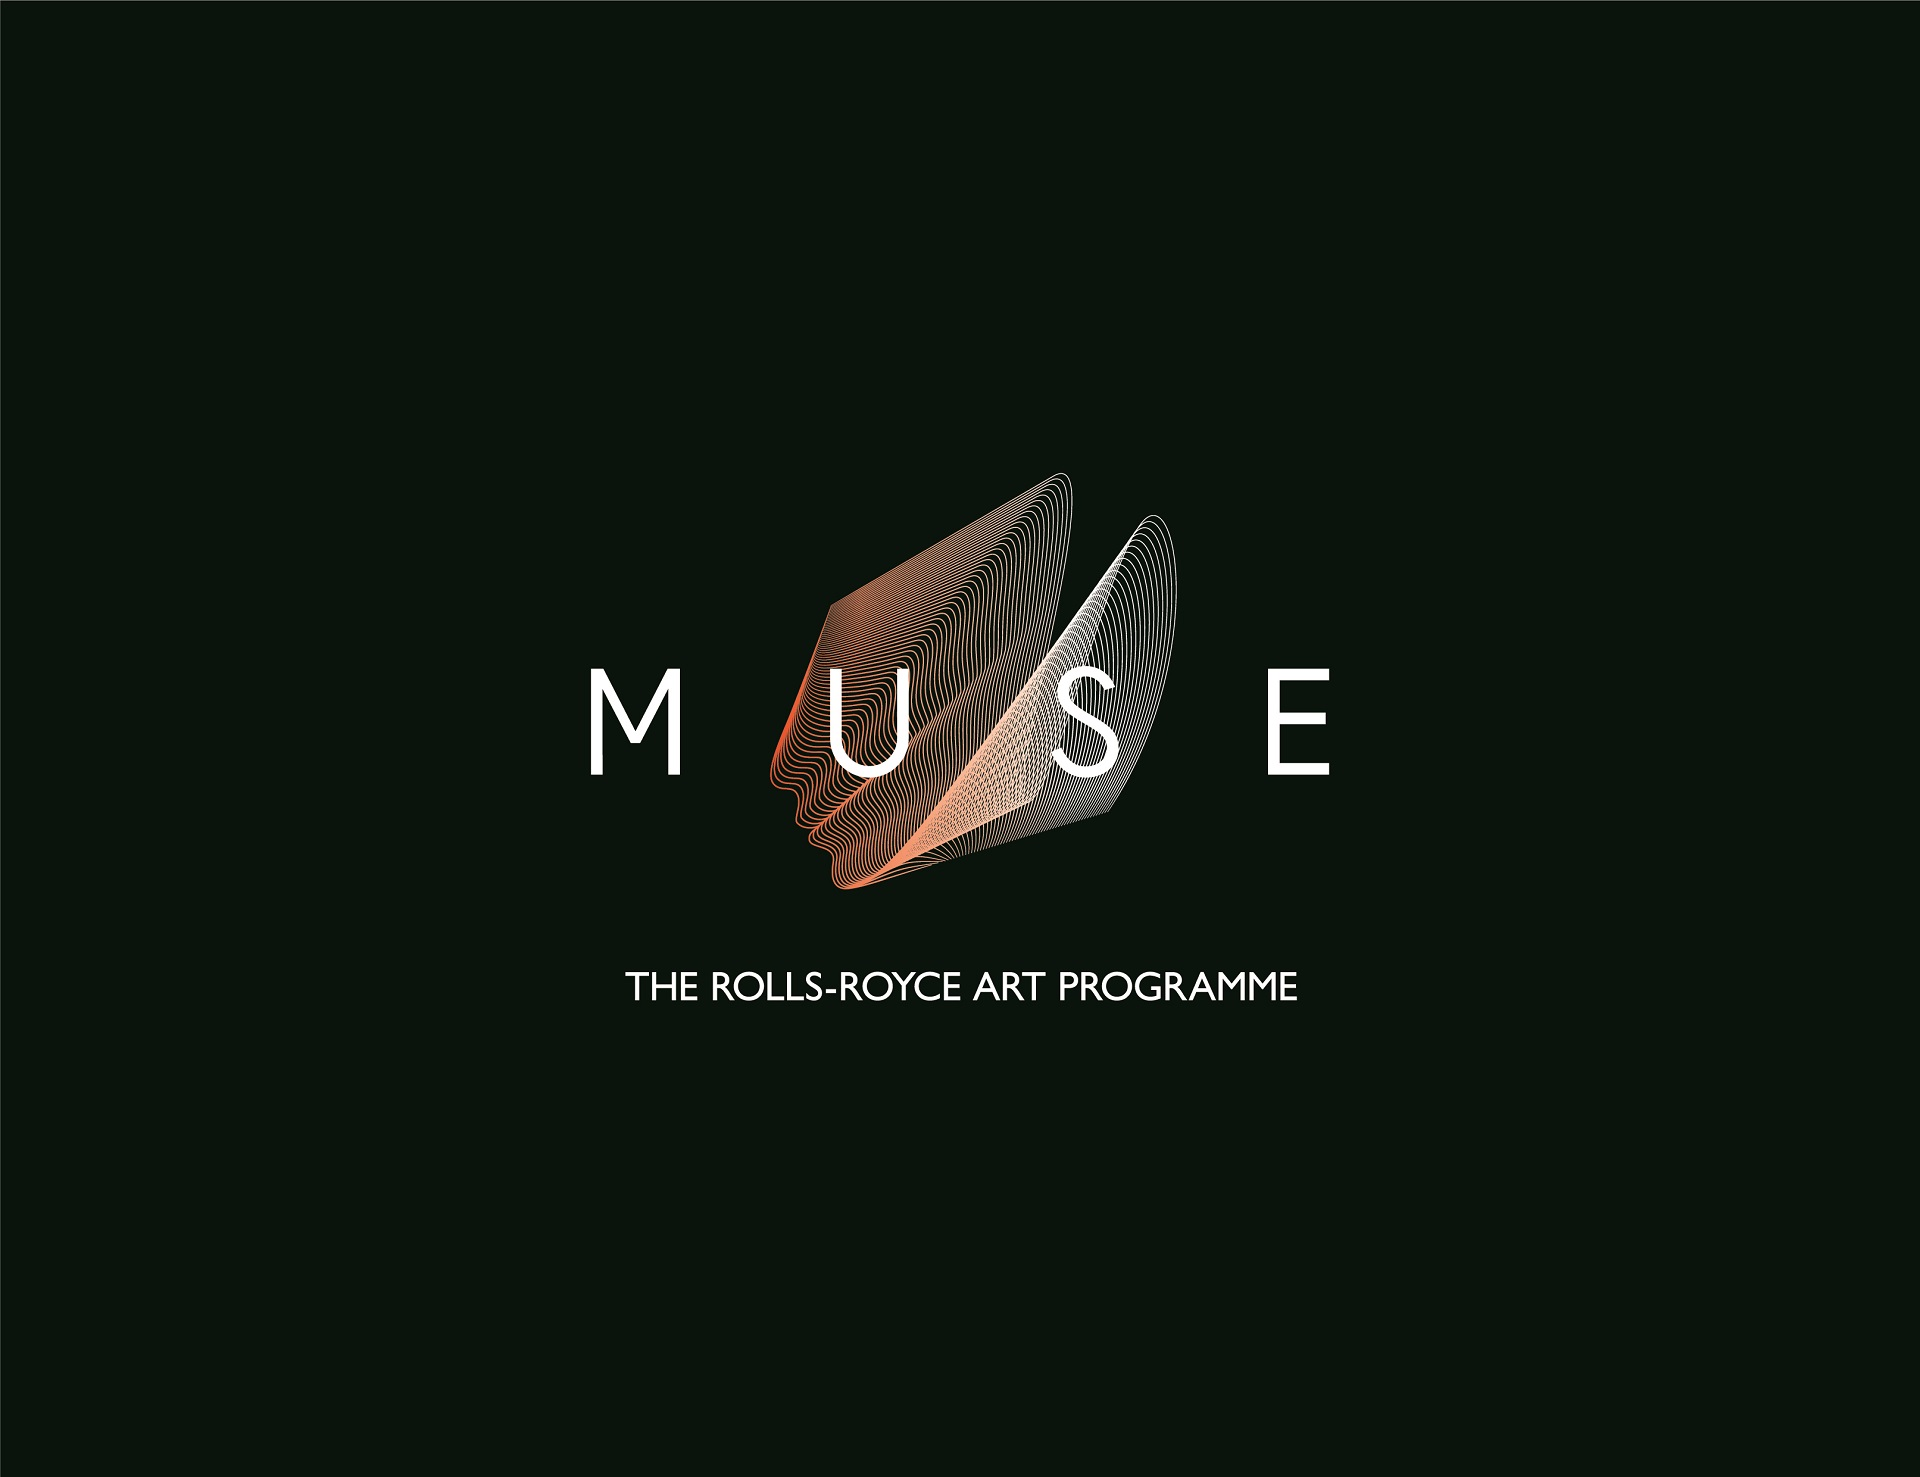 Video: Rolls-Royce Unveils New Art Program – Muse